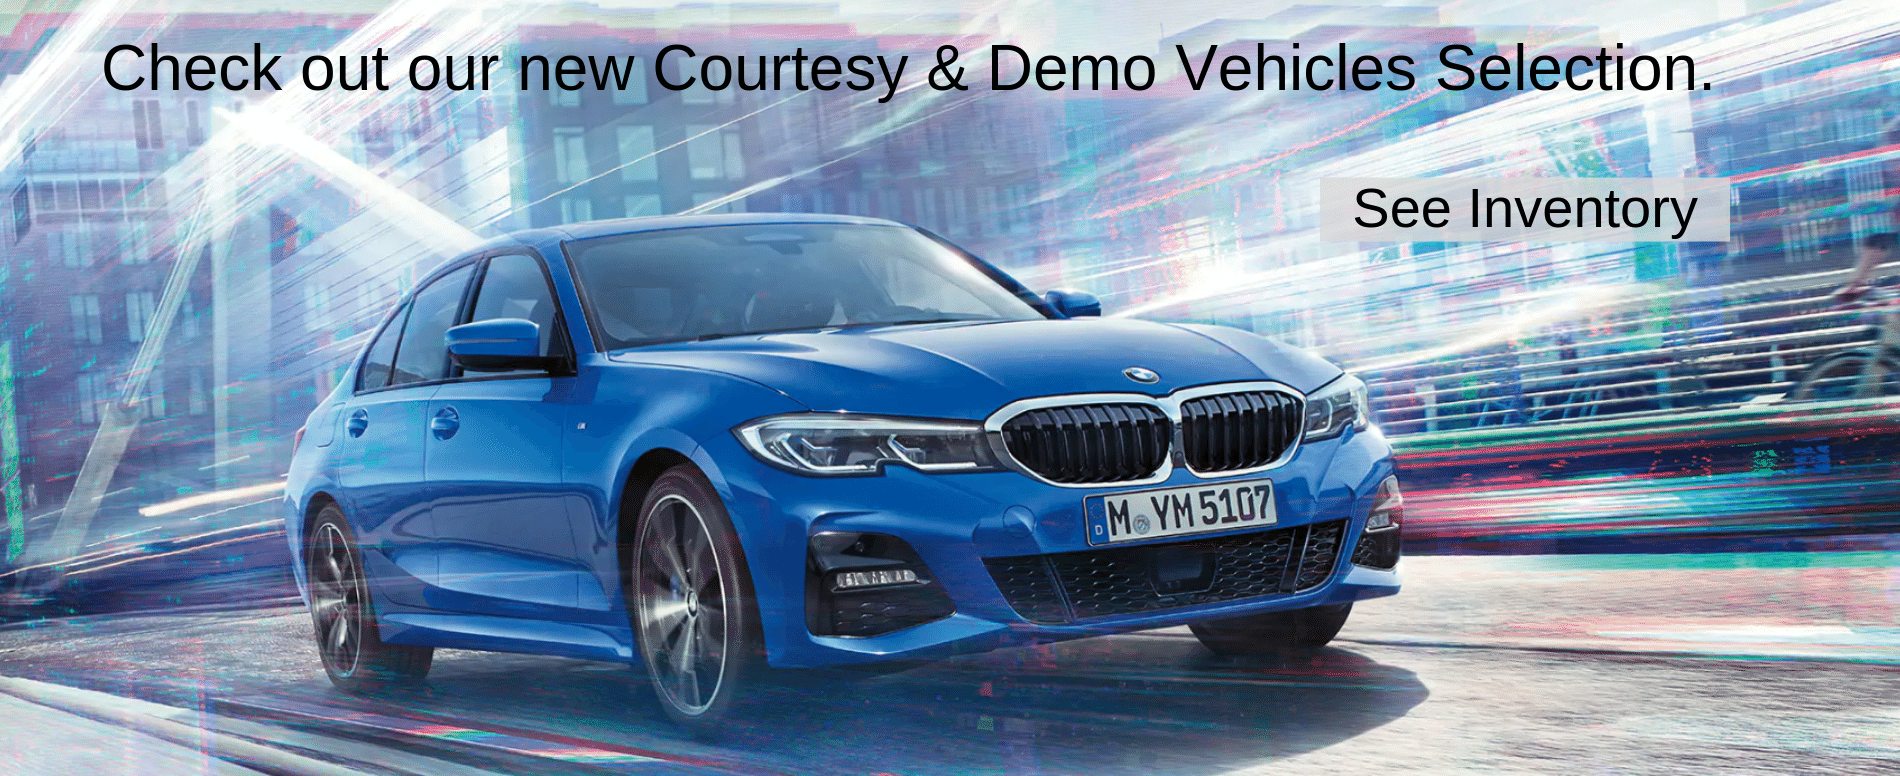 BMW Dealer in Davenport, IA | Used Cars Davenport | Kimberly BMW of